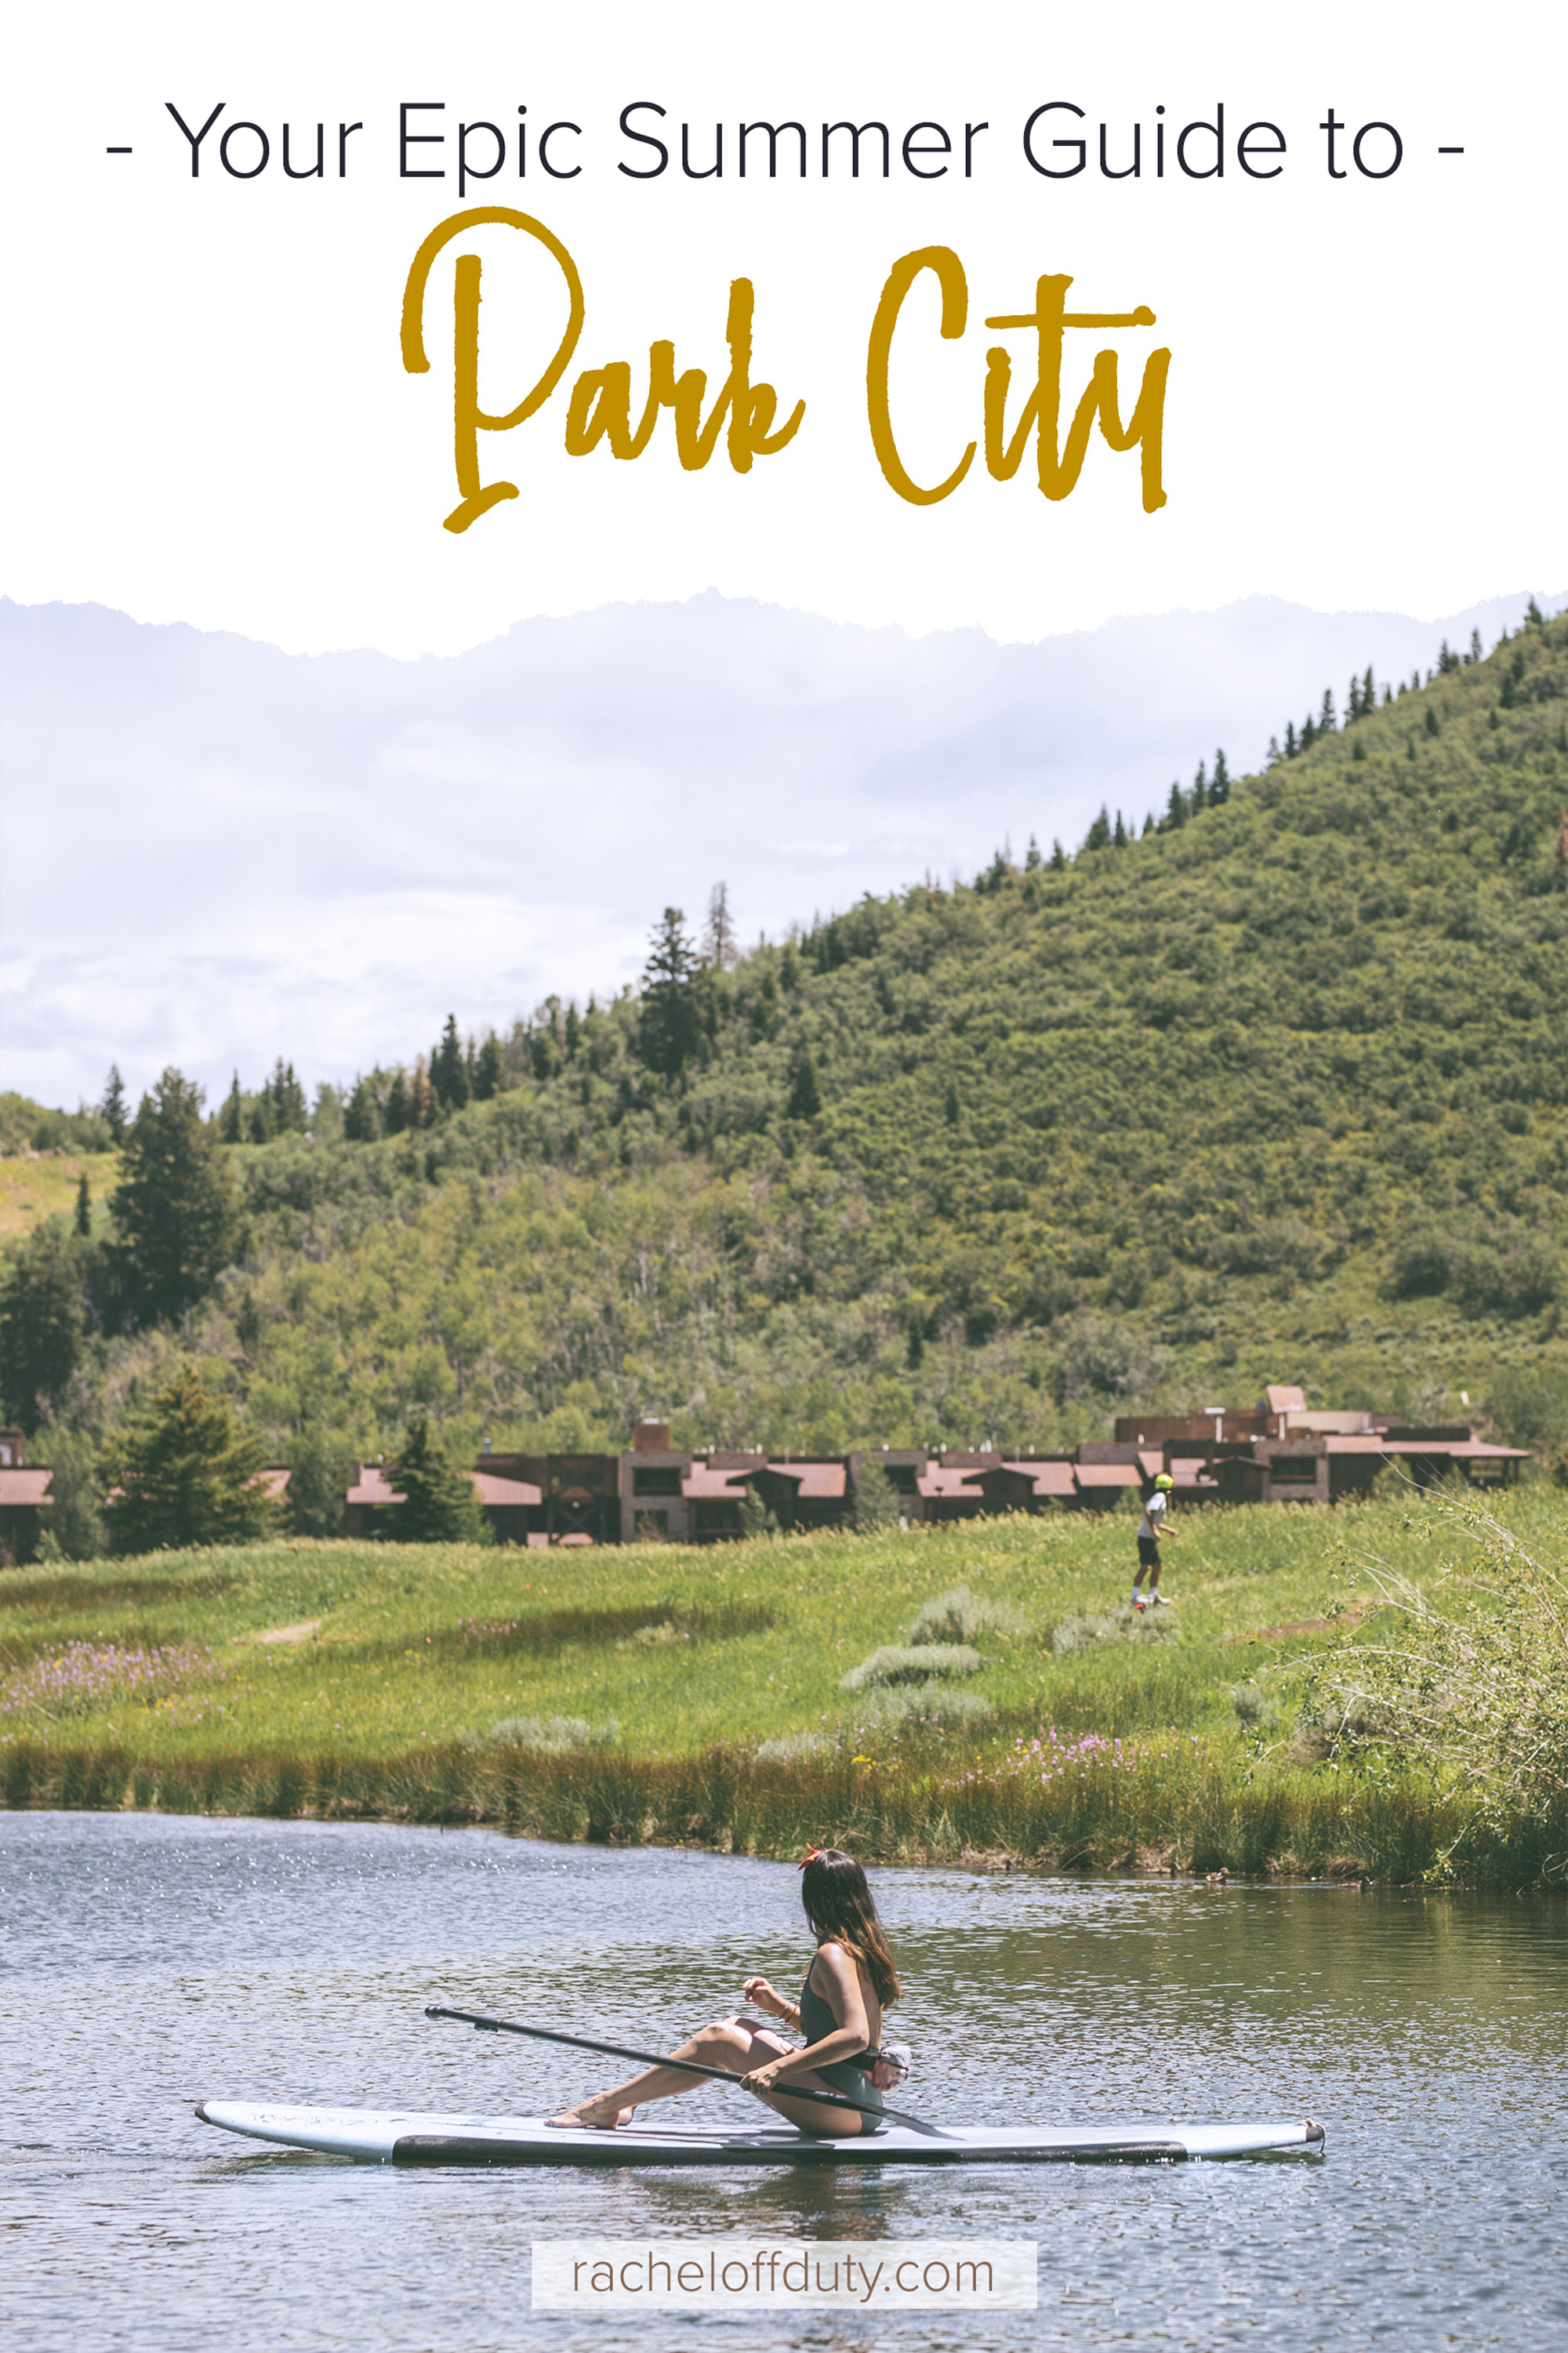 Rachel Off Duty: A First-Timer's Travel Guide to An Epic Summer in Park City